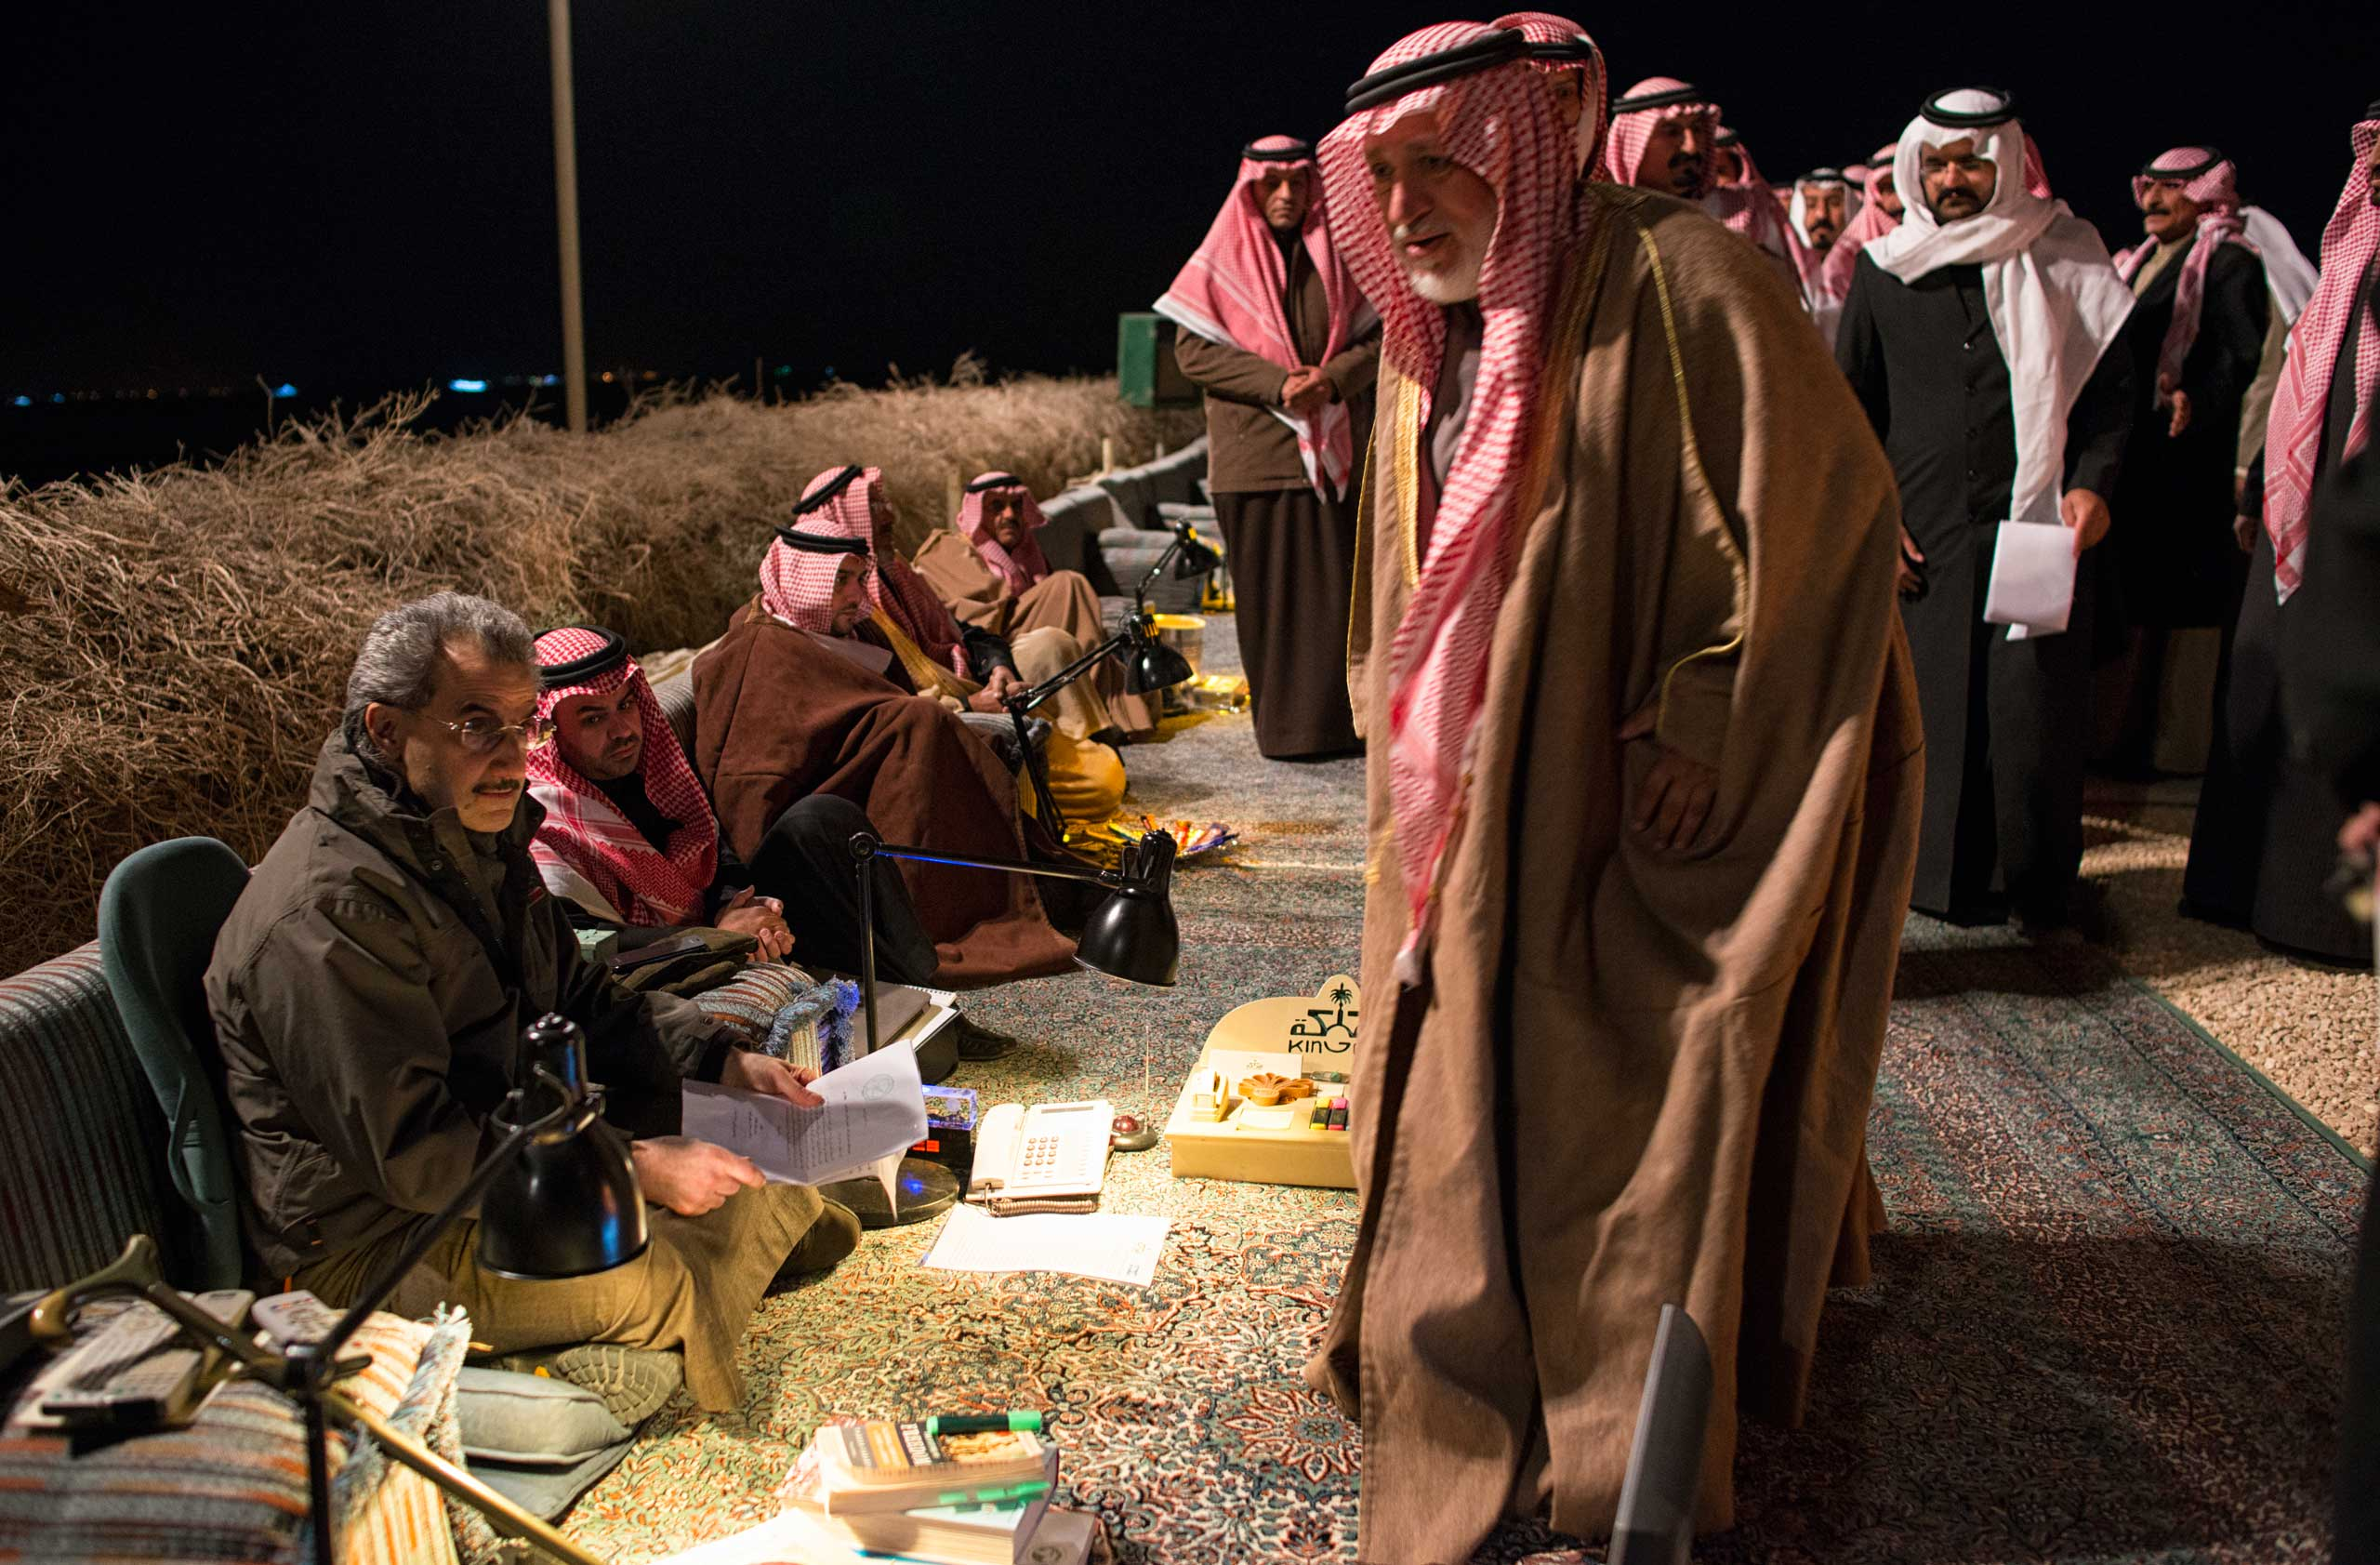 Saudi billionaire, HRH Prince Waleed bin Talal, greets Saudi citizens at a desert camp outside of Riyadh to accept their petitions for his help.